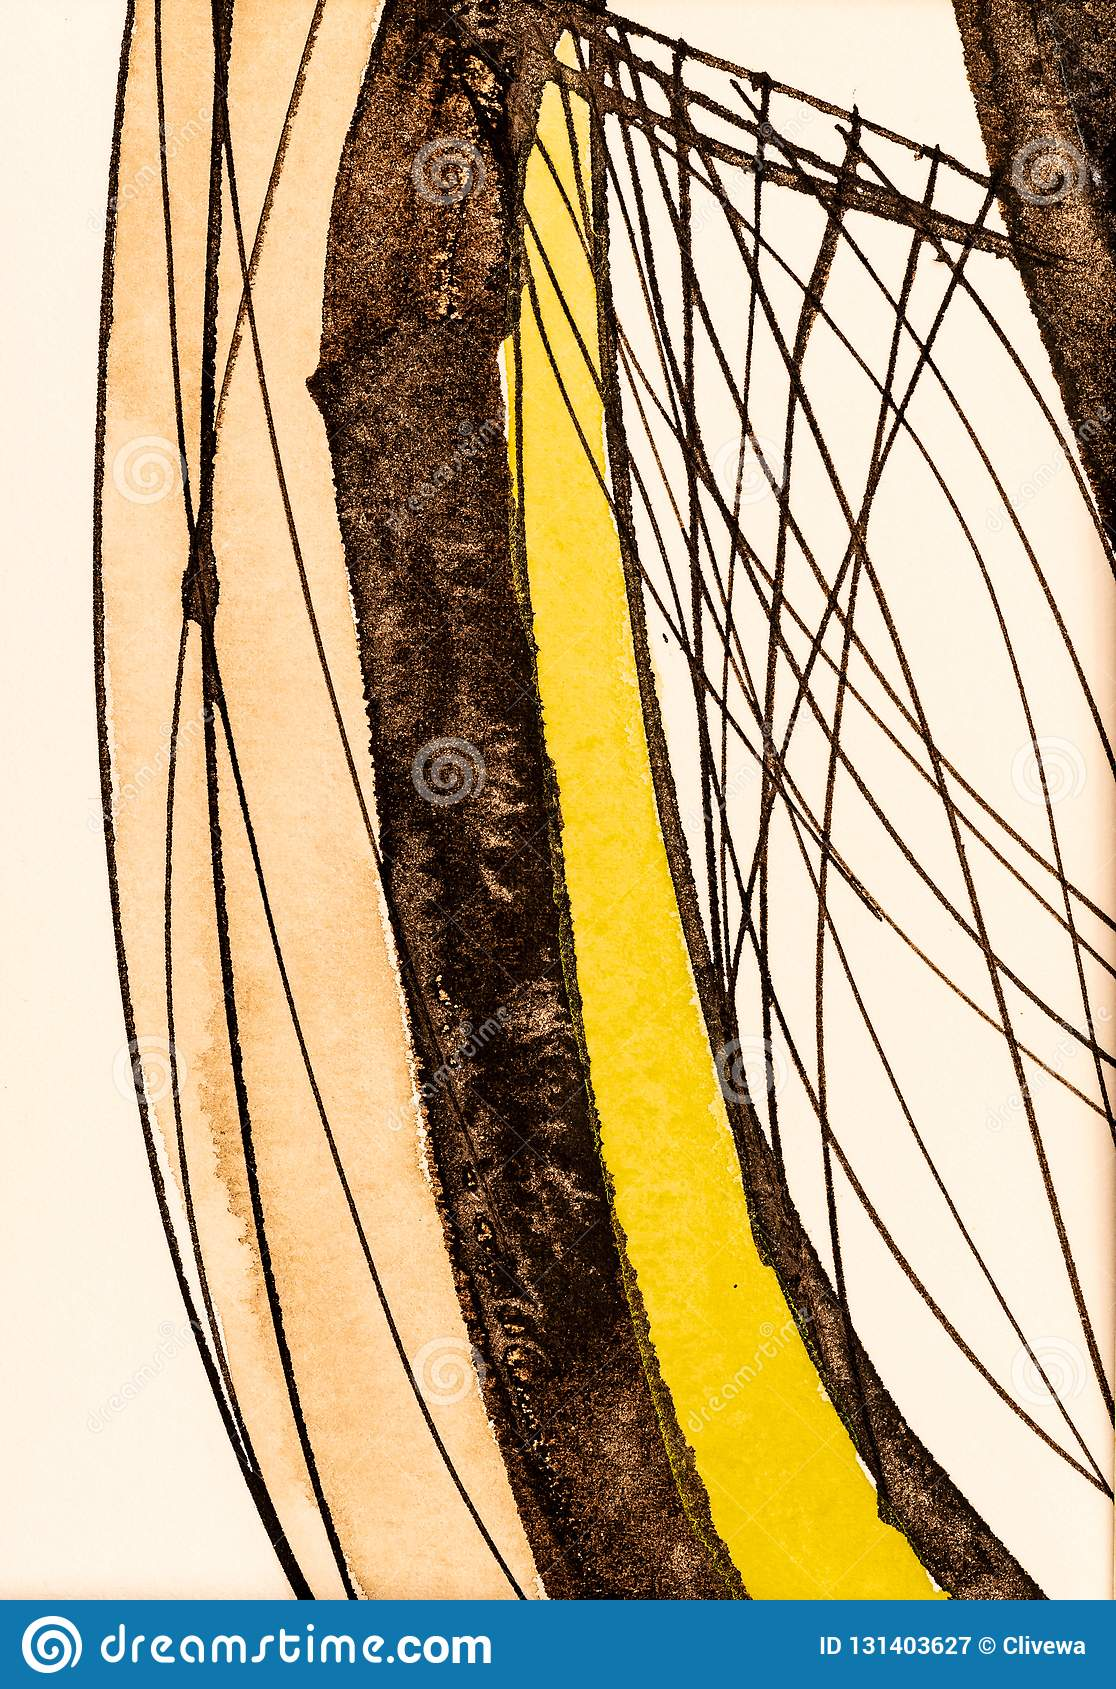 A Detail from a Calligraphic Painting with Watercolor and Ink